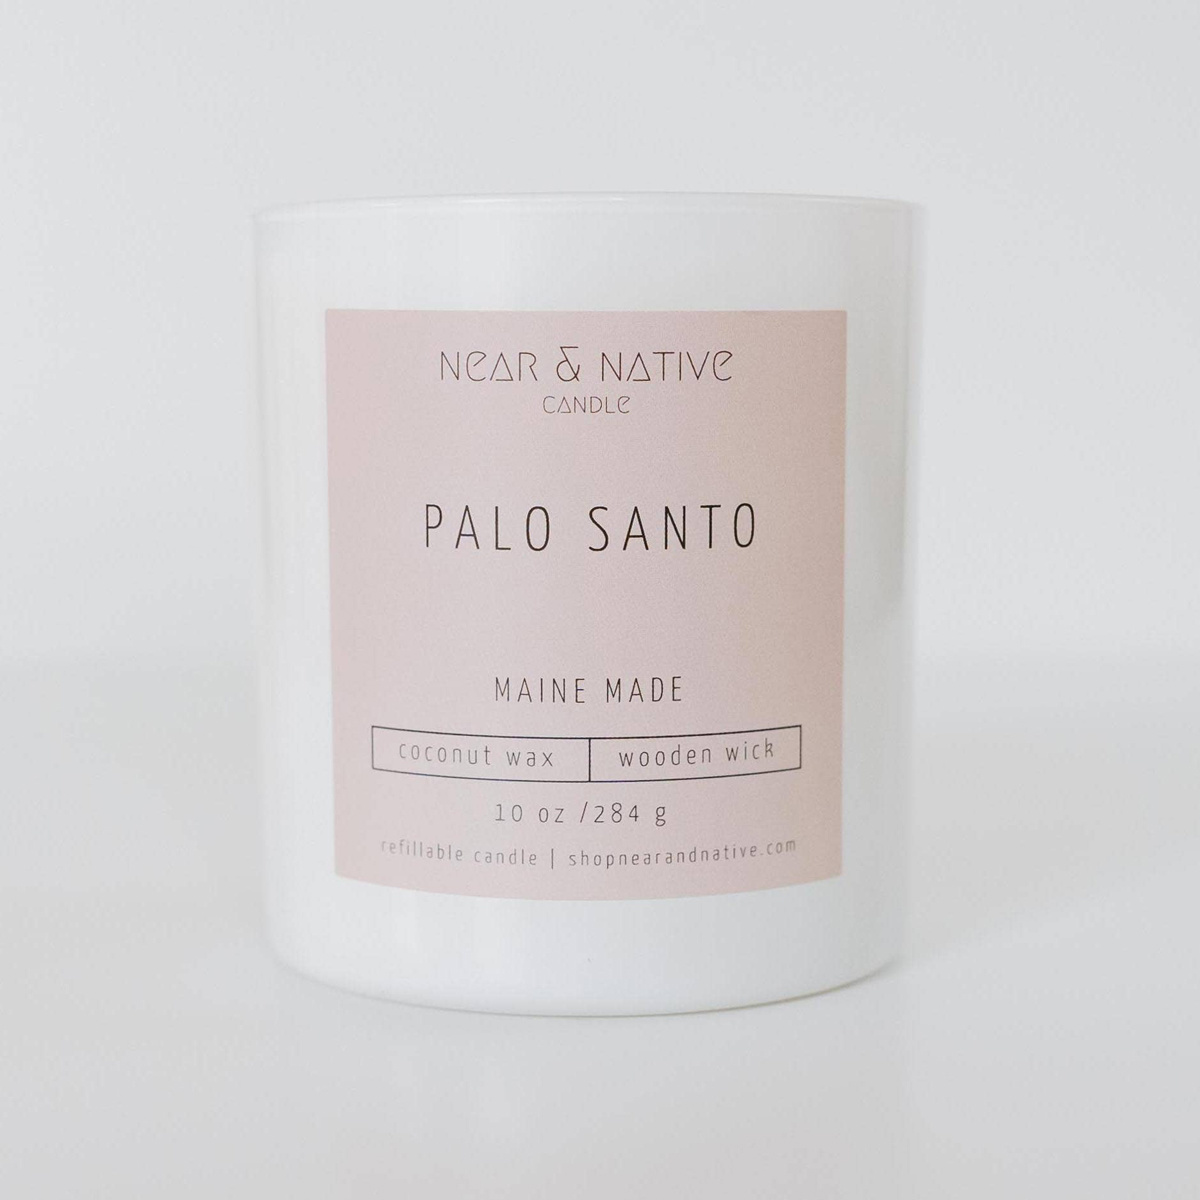 Near & Native Palo Santo Wood Wick Candle, Made in Maine